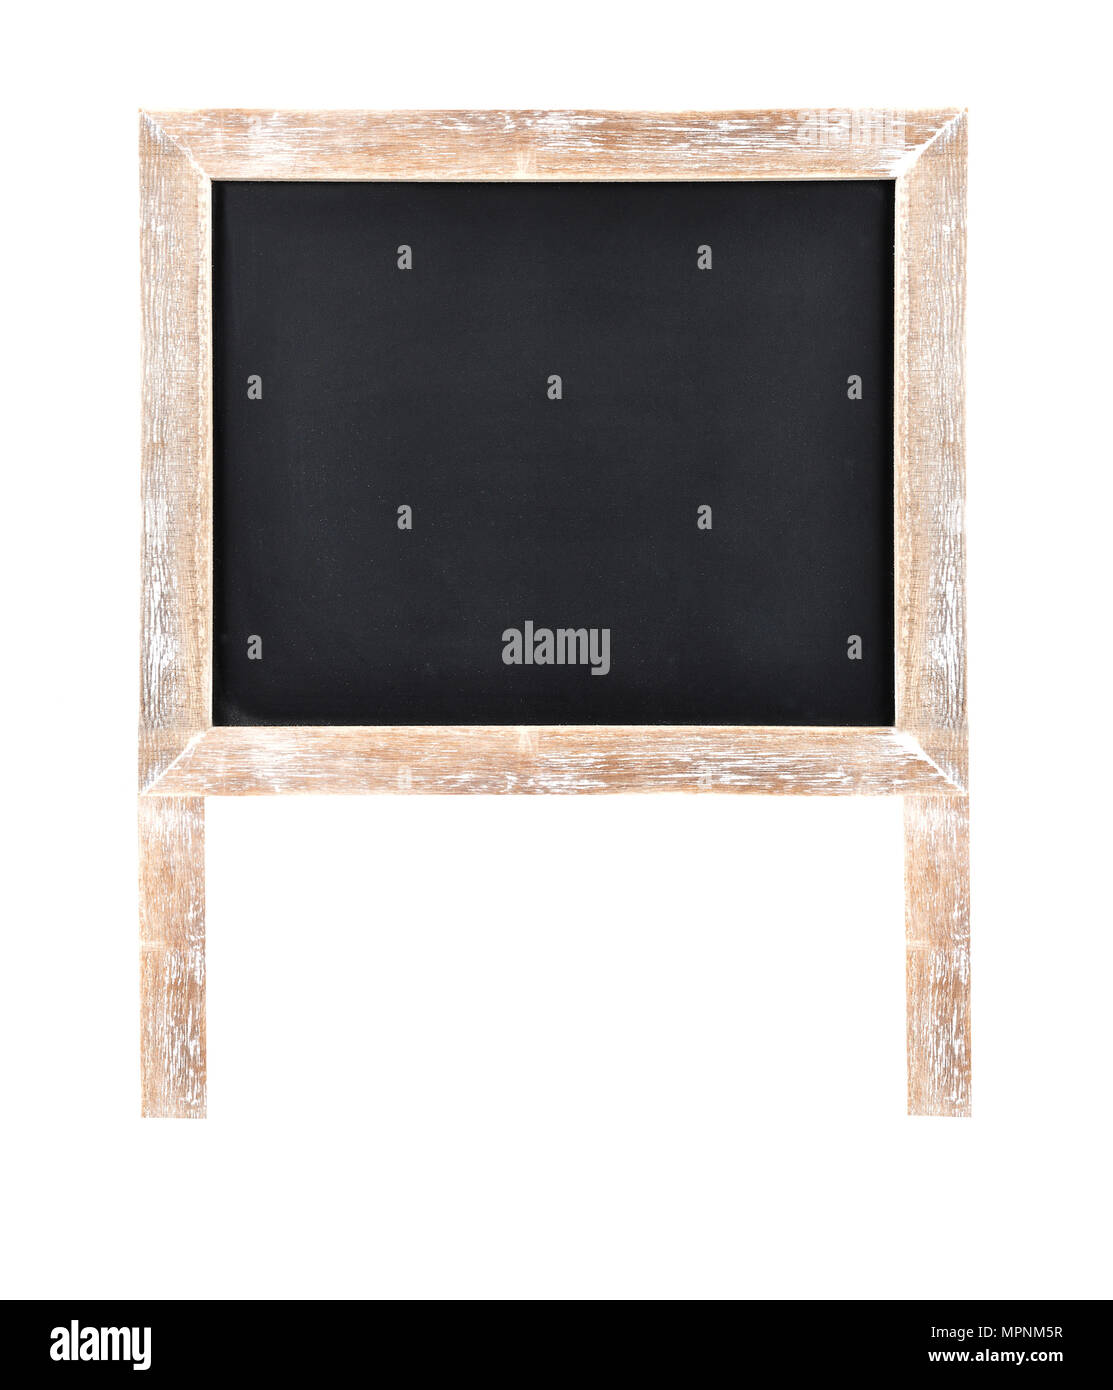 Chalkboard with frame and wooden stand Stock Photo: 186102947 - Alamy